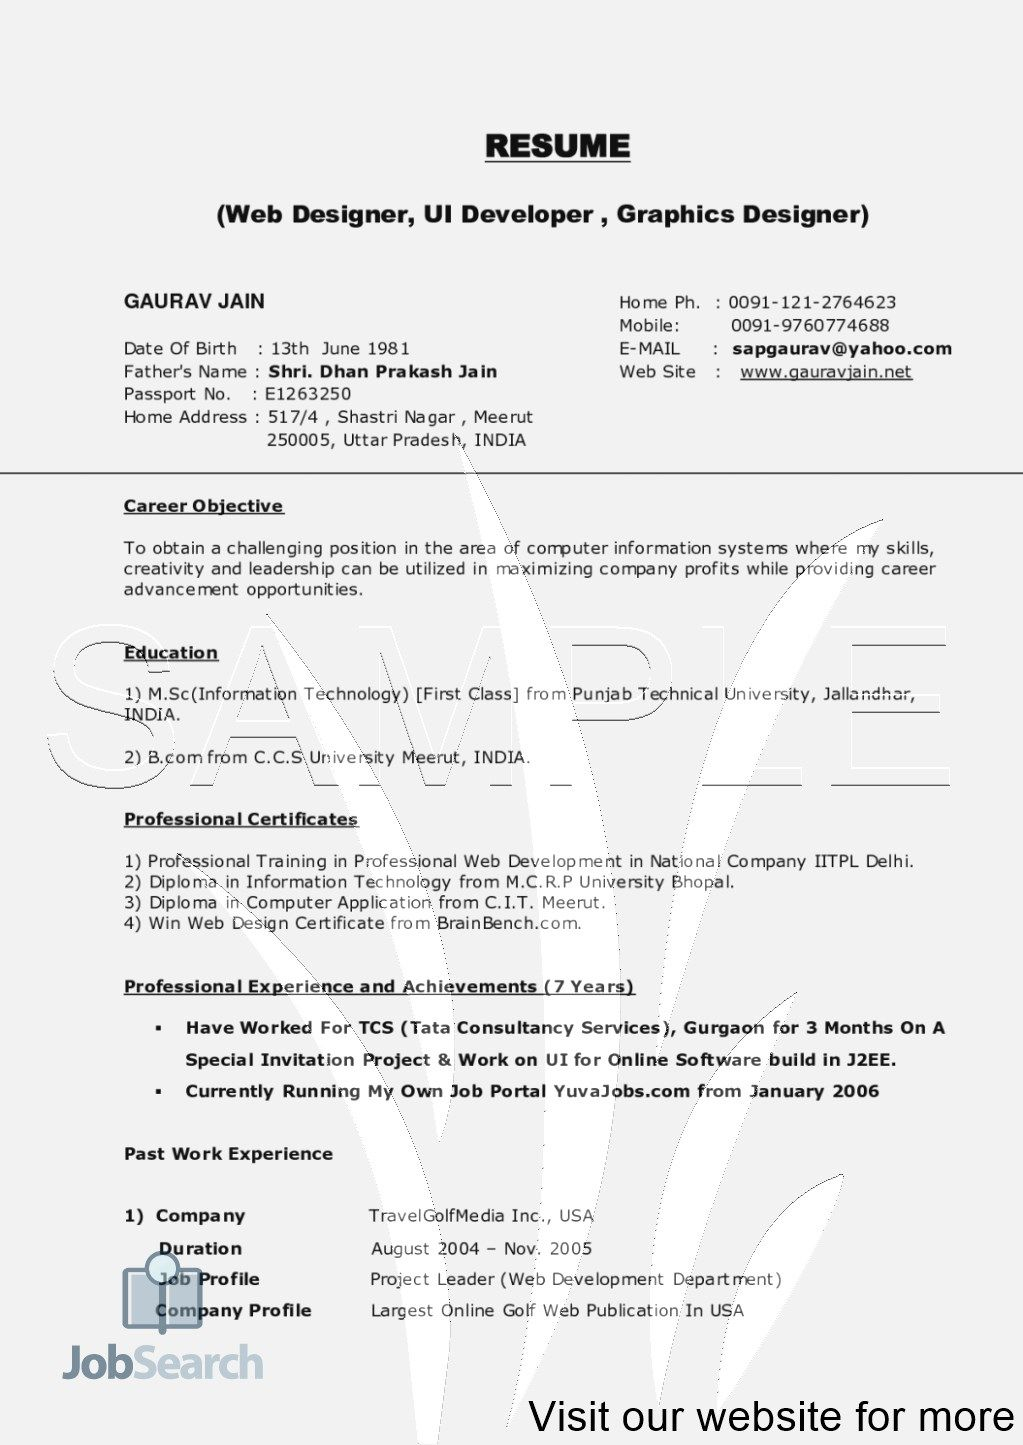 Resume Template Professional Cv Design Free 2020 Resume Design Resume Template Professional Resume Template